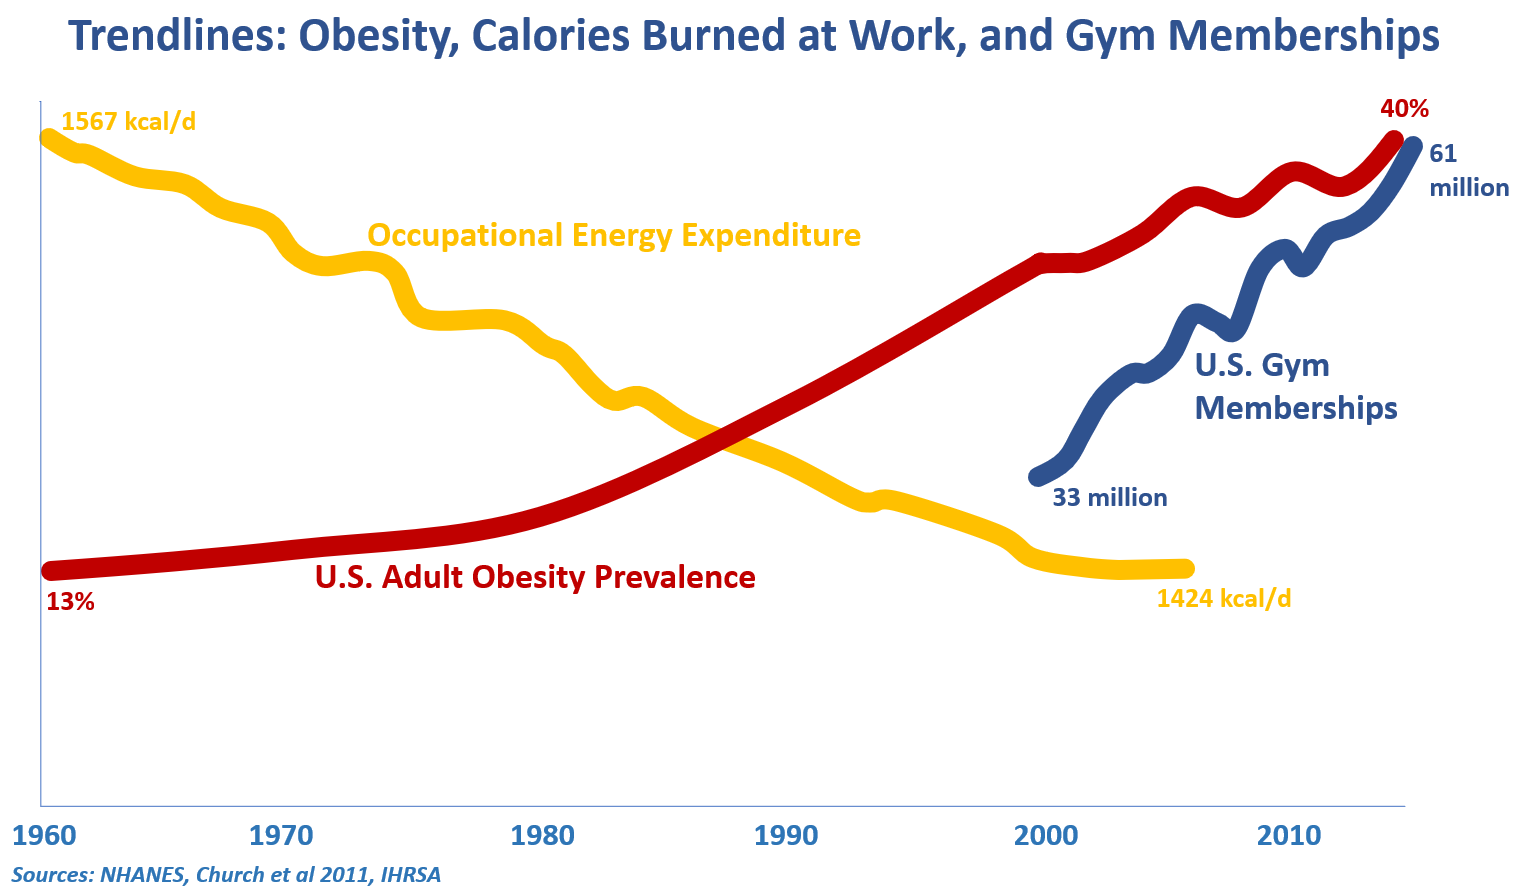 Trendlines - Obesity, Calories Burned at Work, Gym Memberships